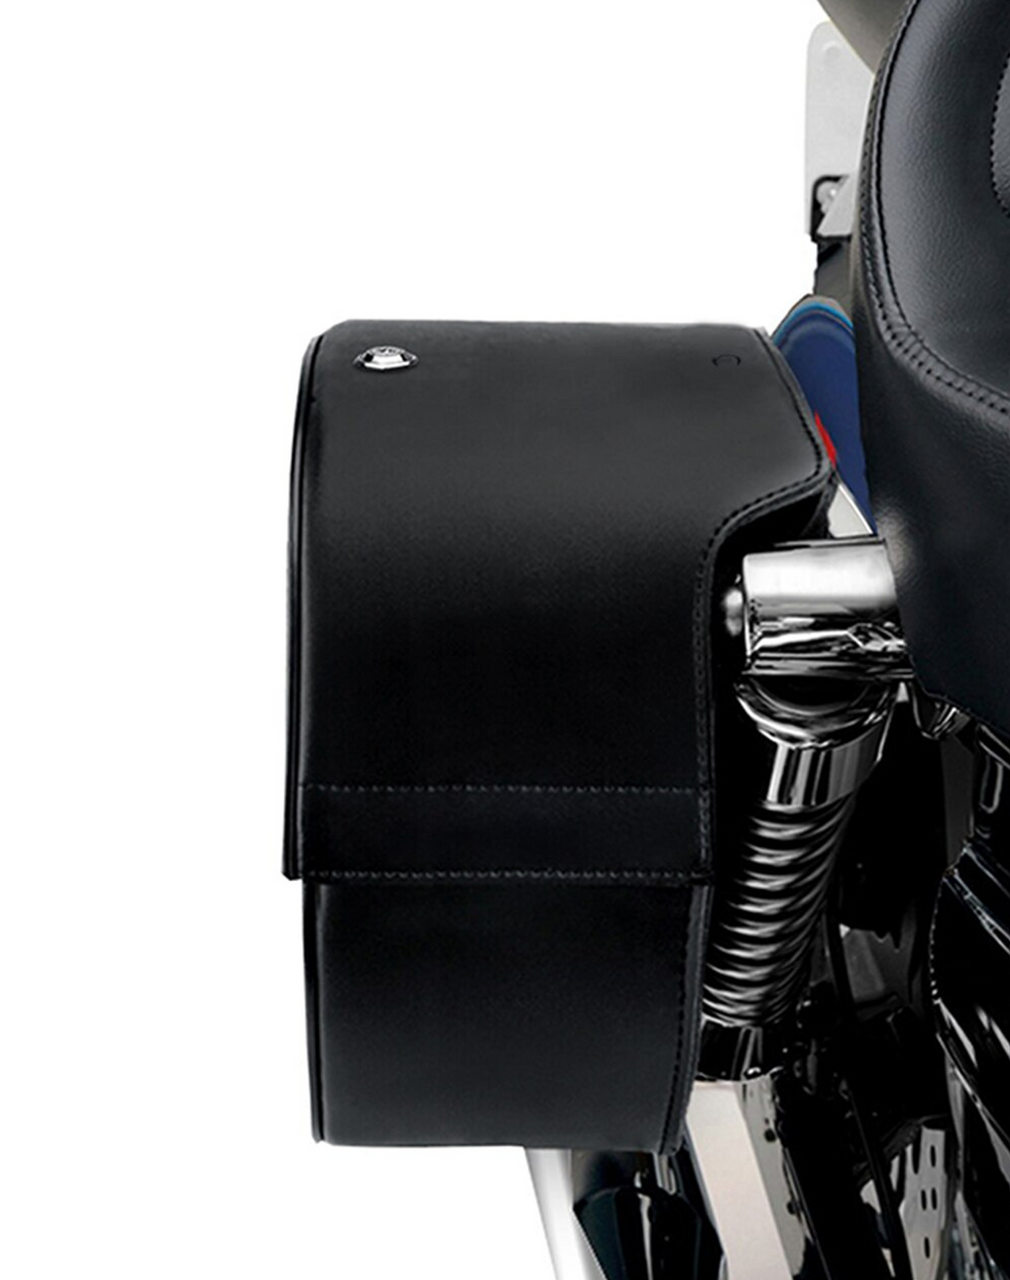 VikingBags Charger Medium Side pocket Leather Motorcycle Saddlebags For Harley Sportster Super Low 1200T Shock Cutout View